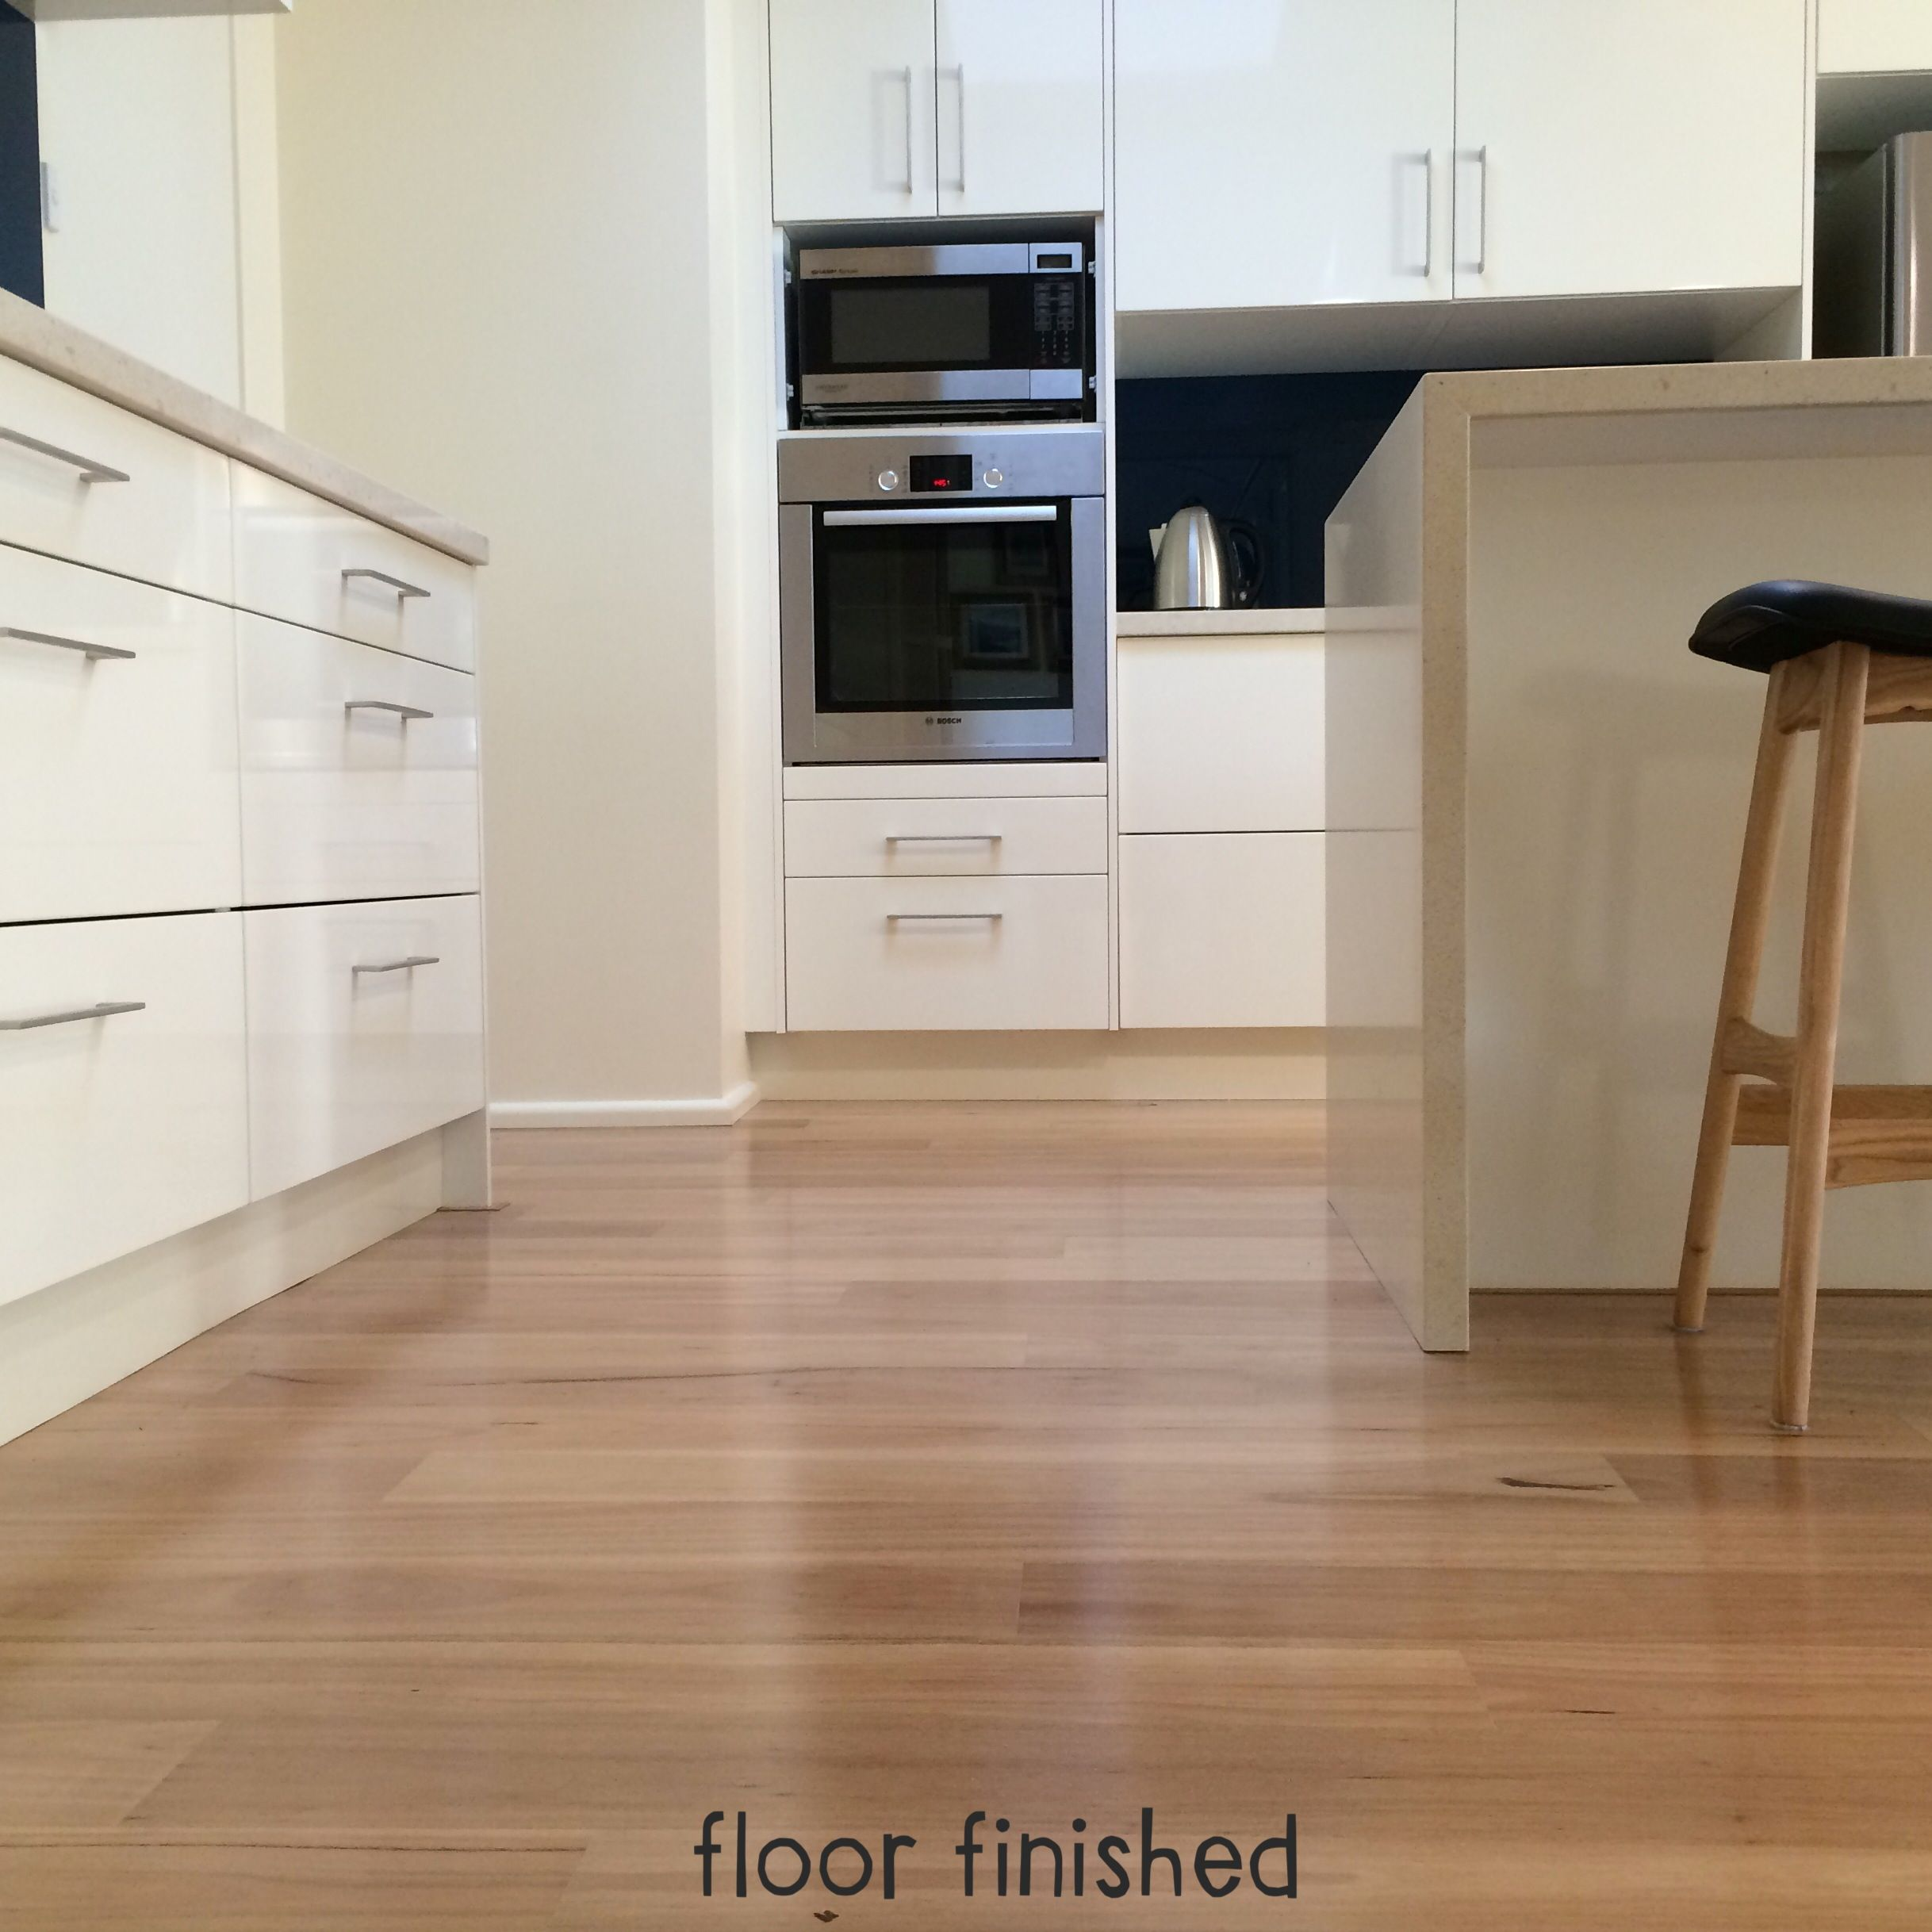 Types Of Kitchen Flooring Ideas: Blackbutt Floors Finish Our New Kitchen. Fiona Moore